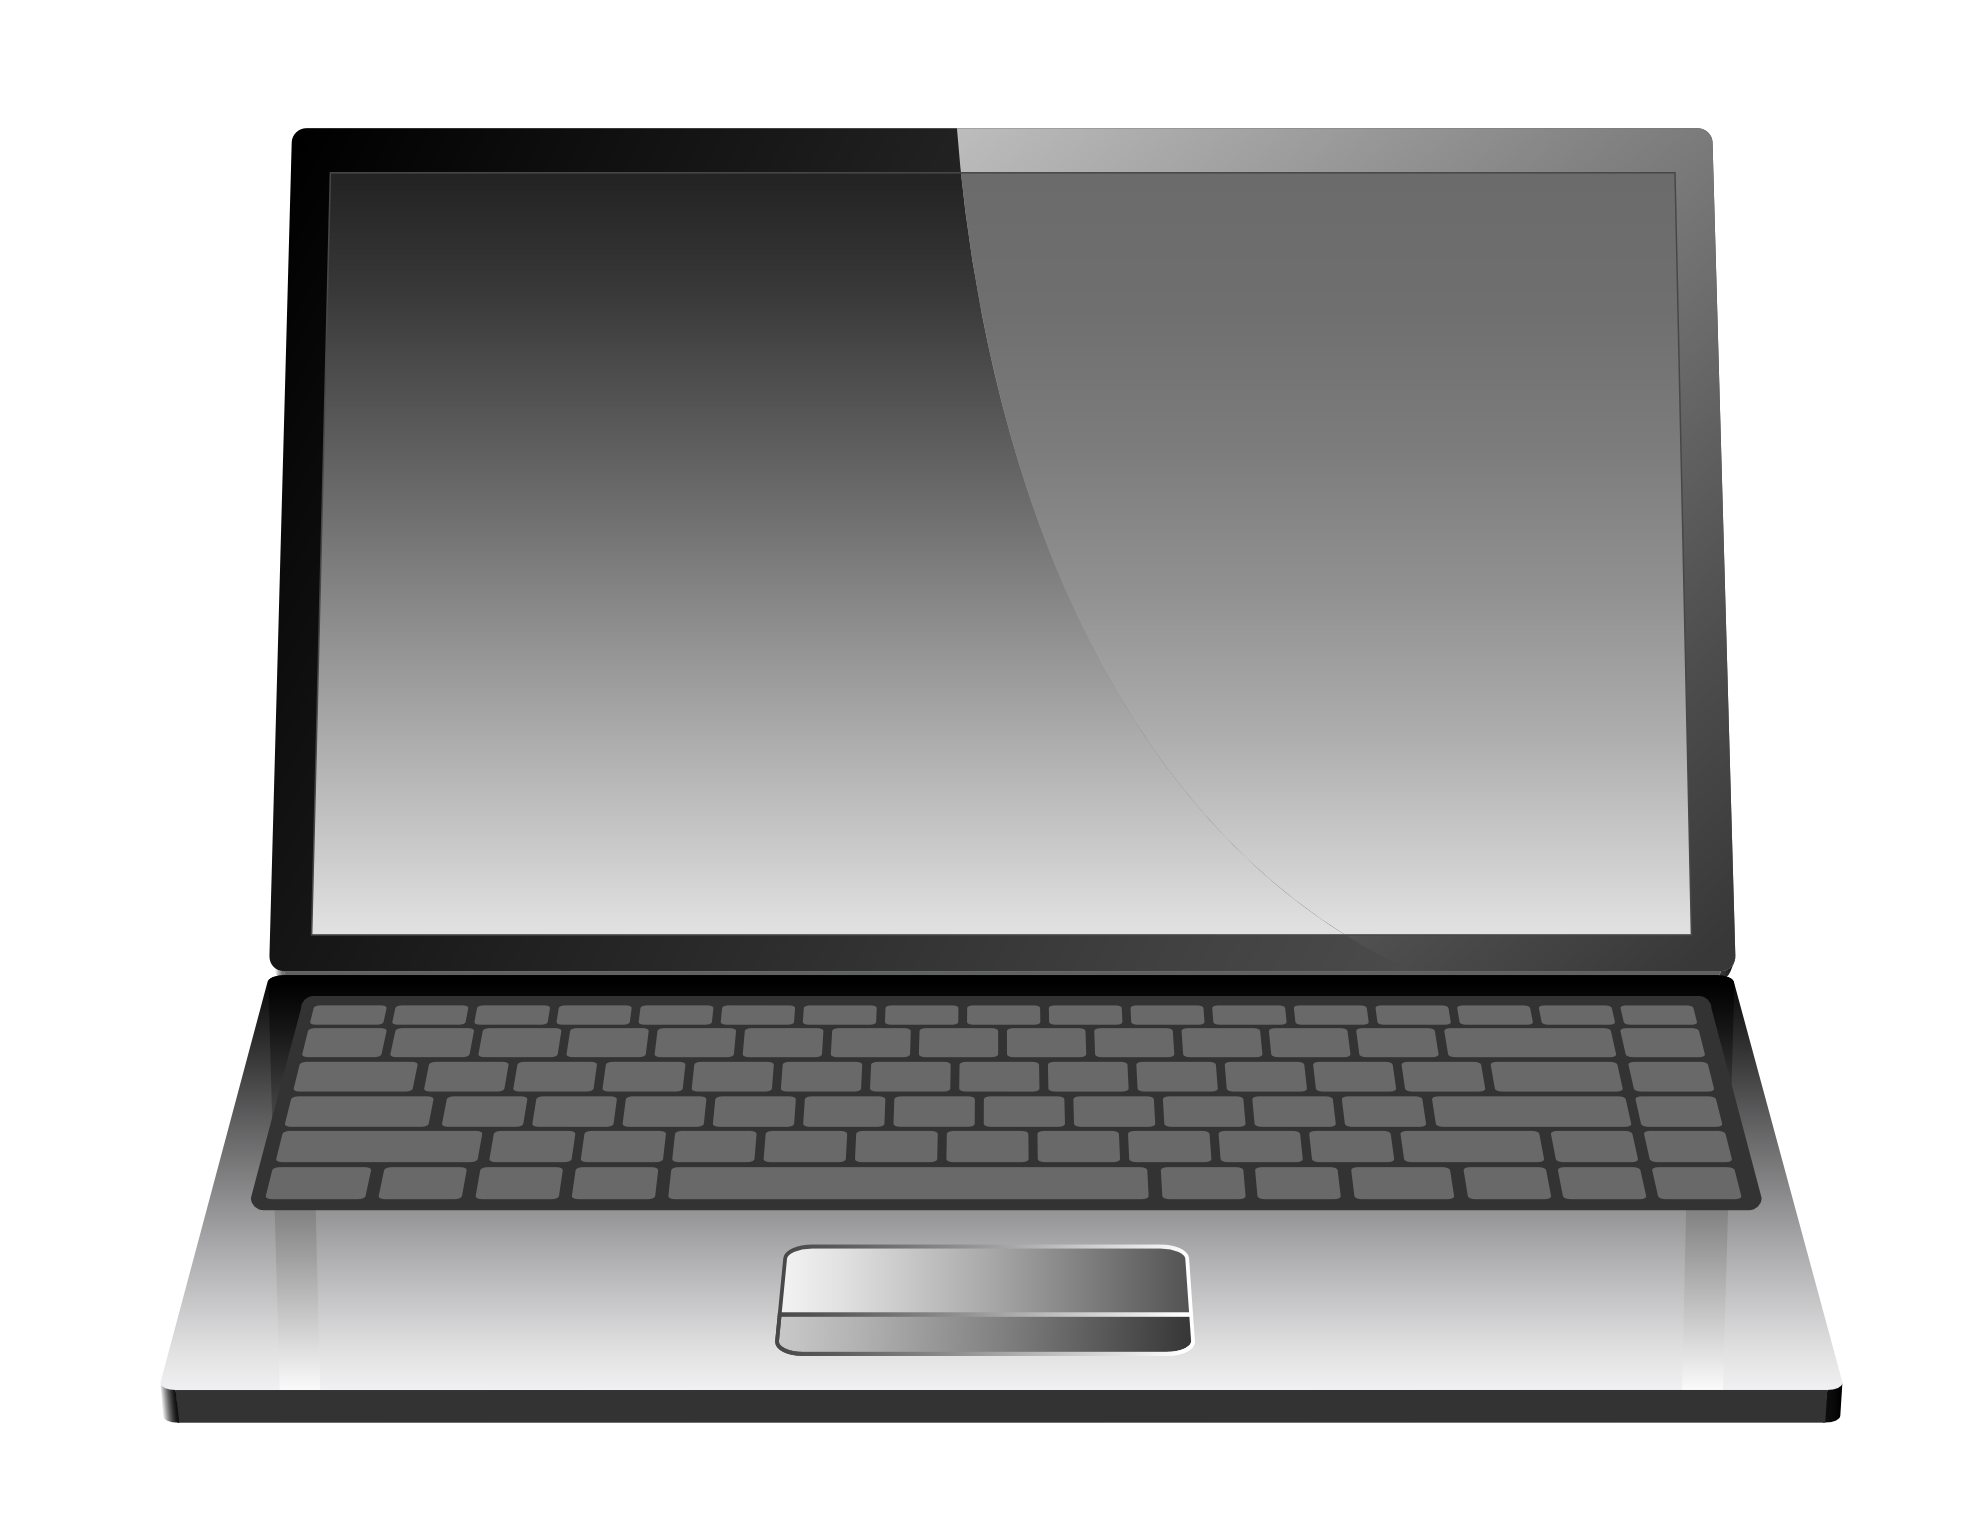 Notebook HD PNG - 92020